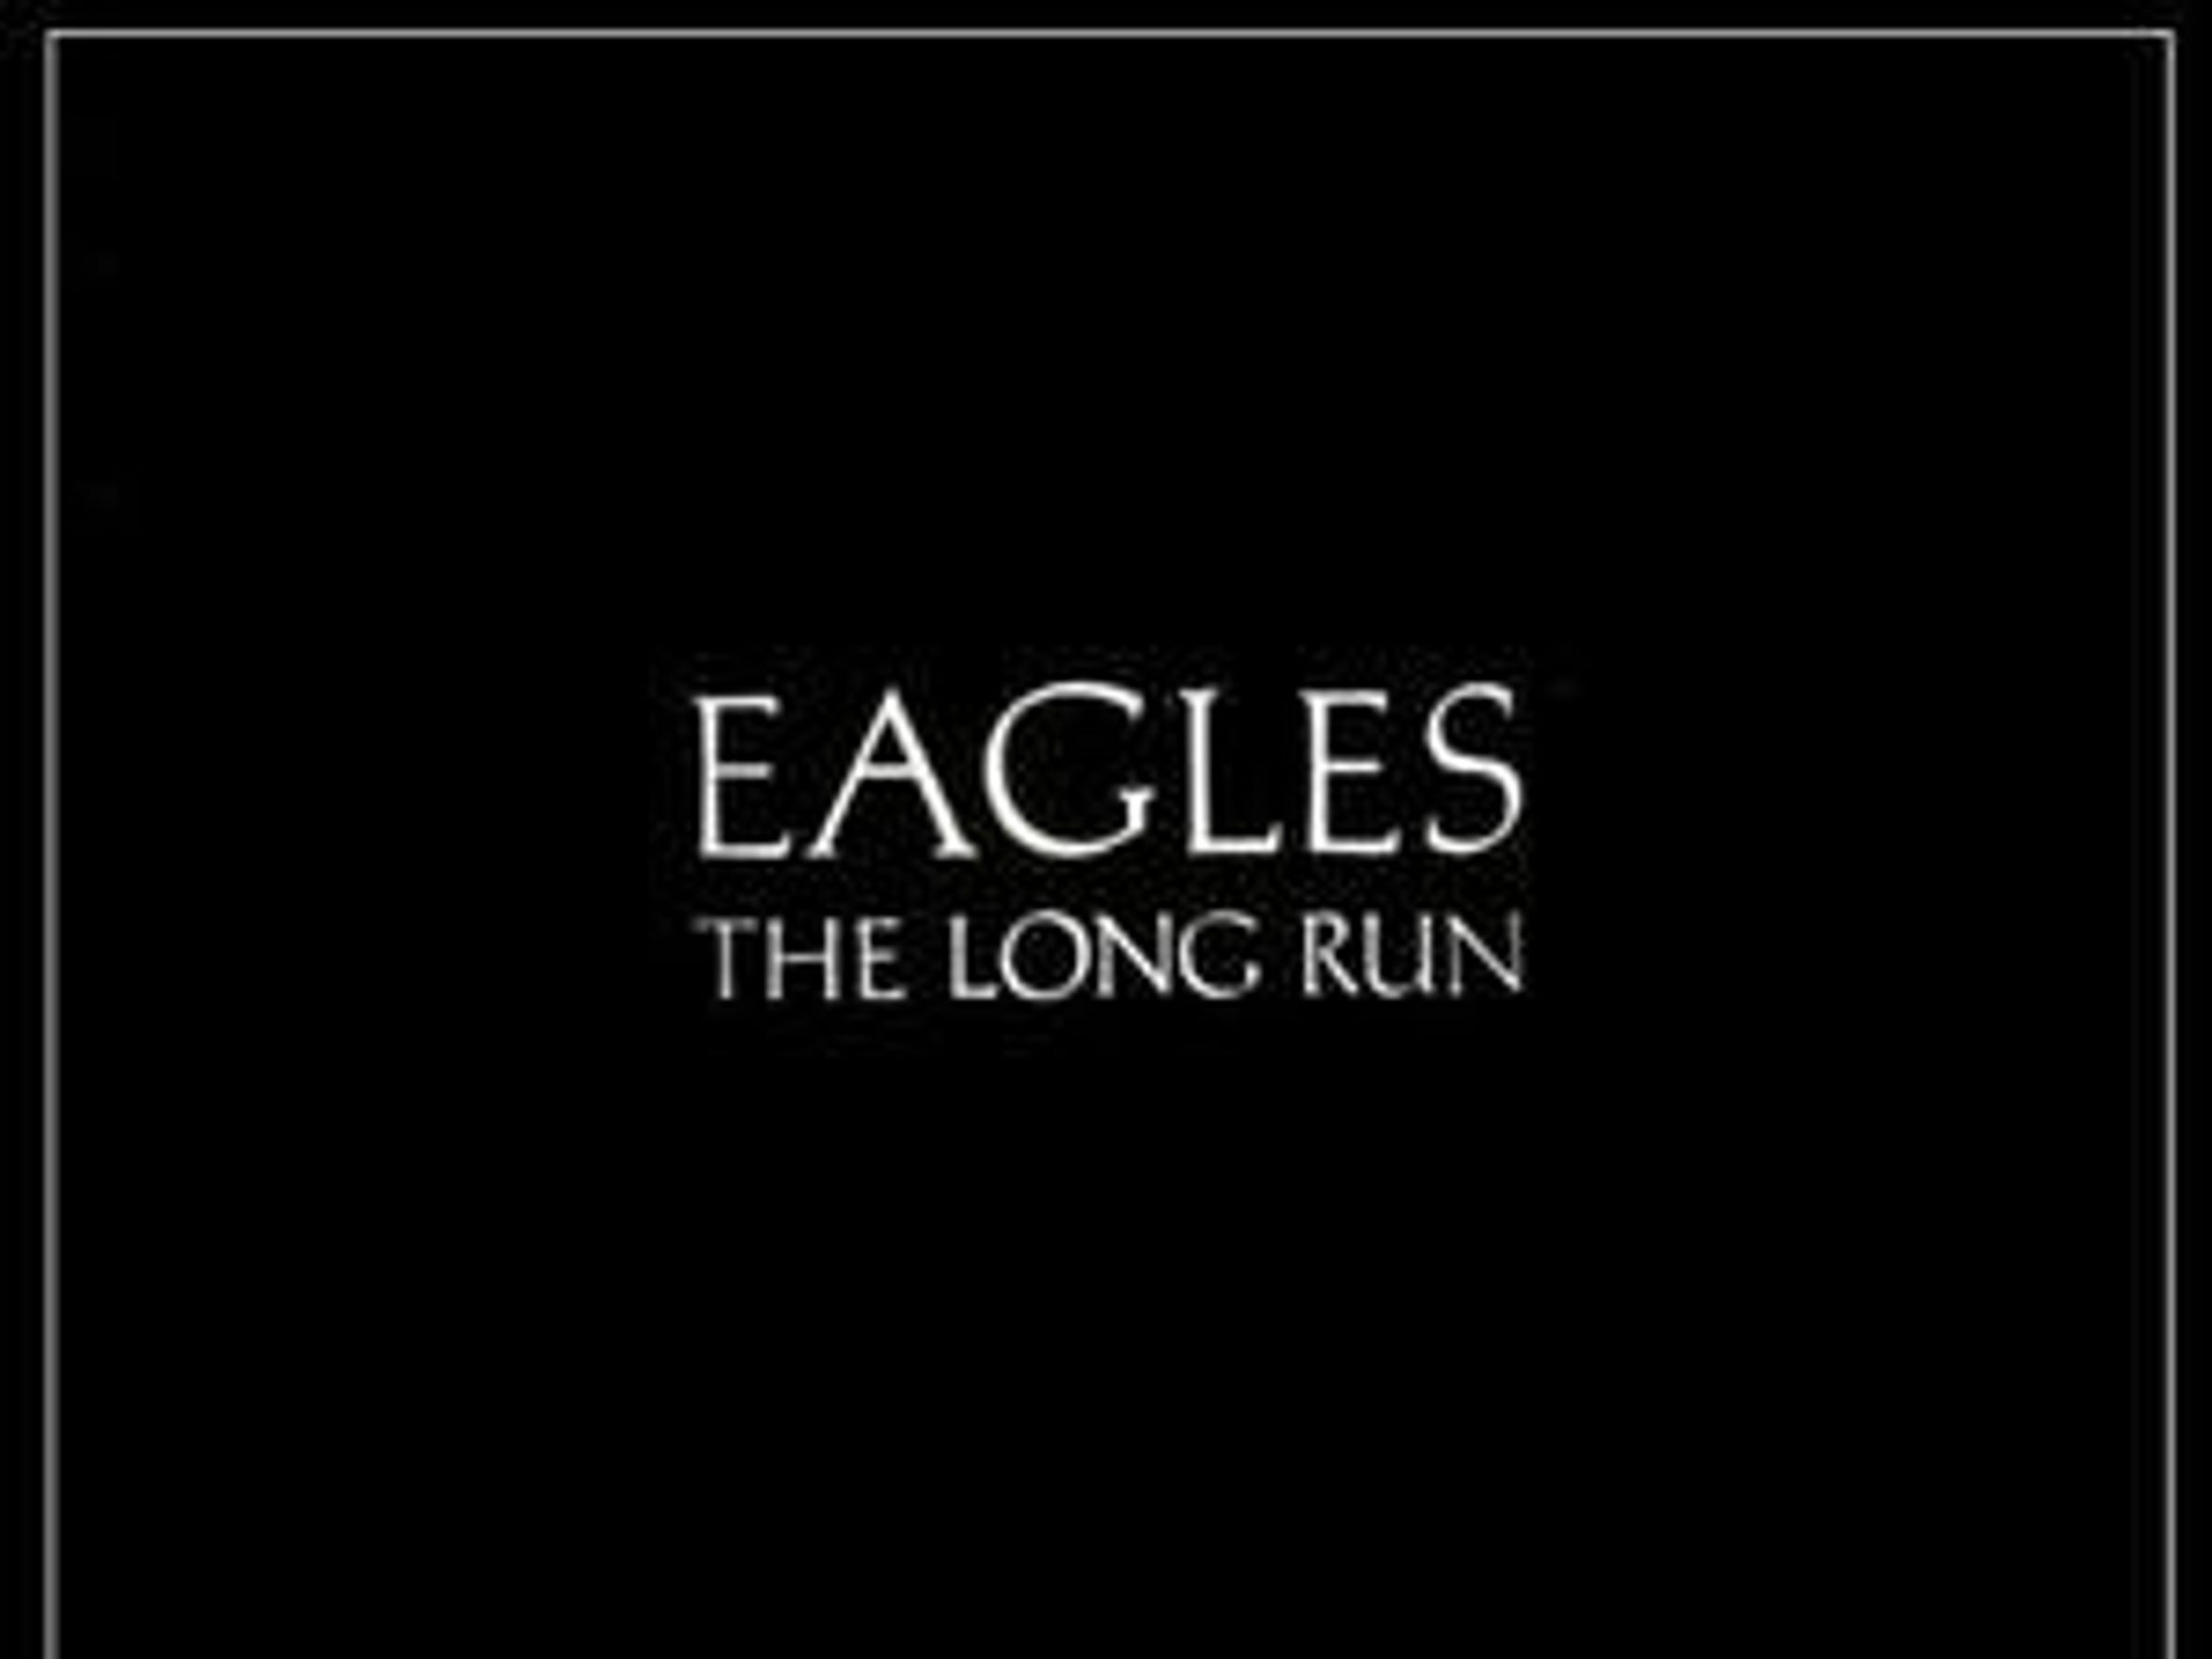 13 Of The Eagles Most Enduring Lyrics